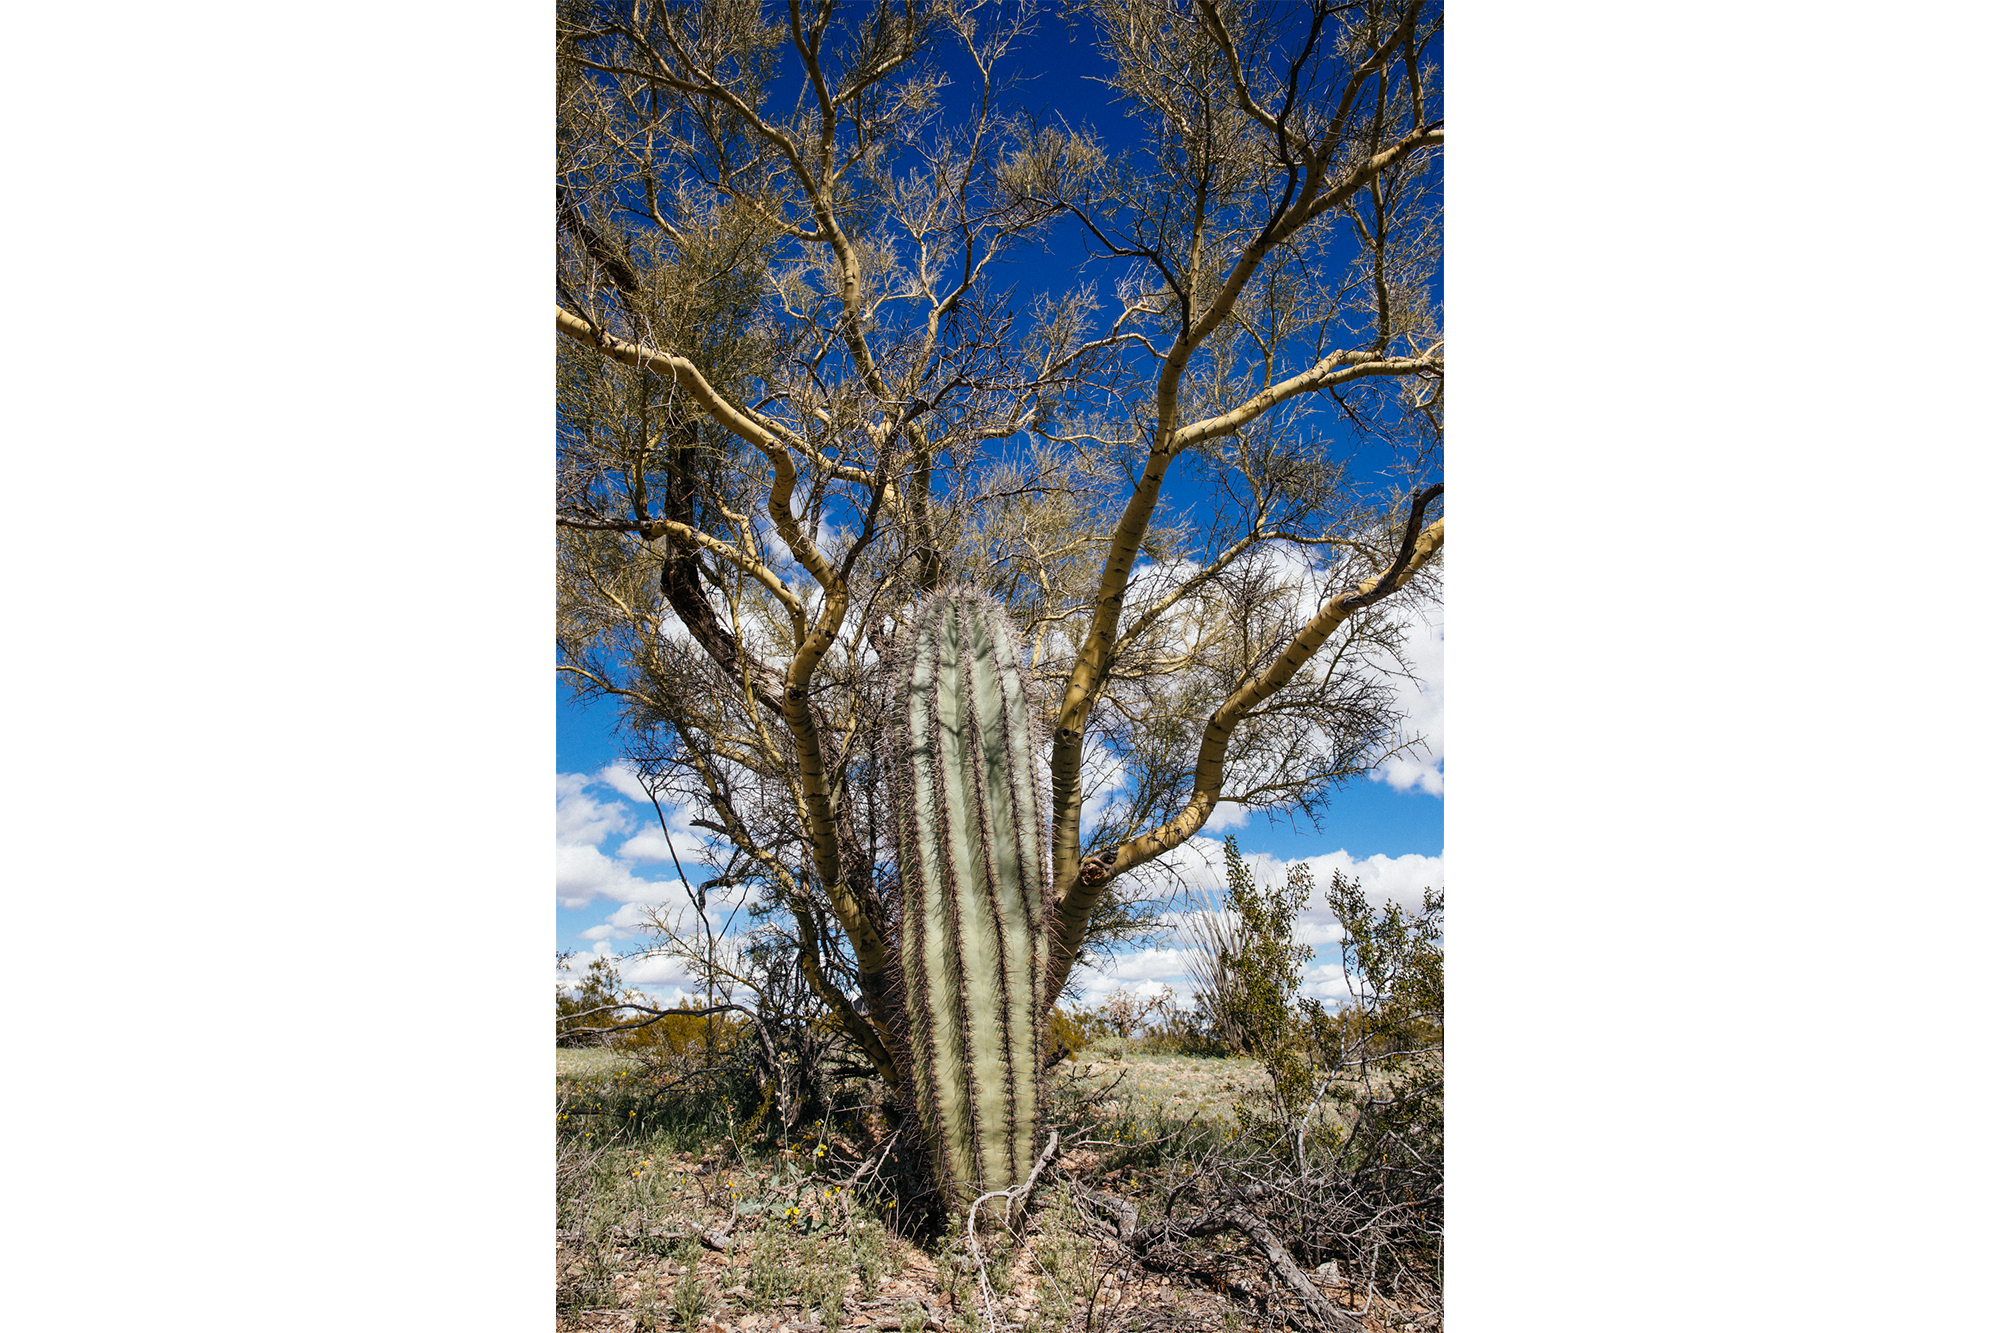 Saguaro and palo verde